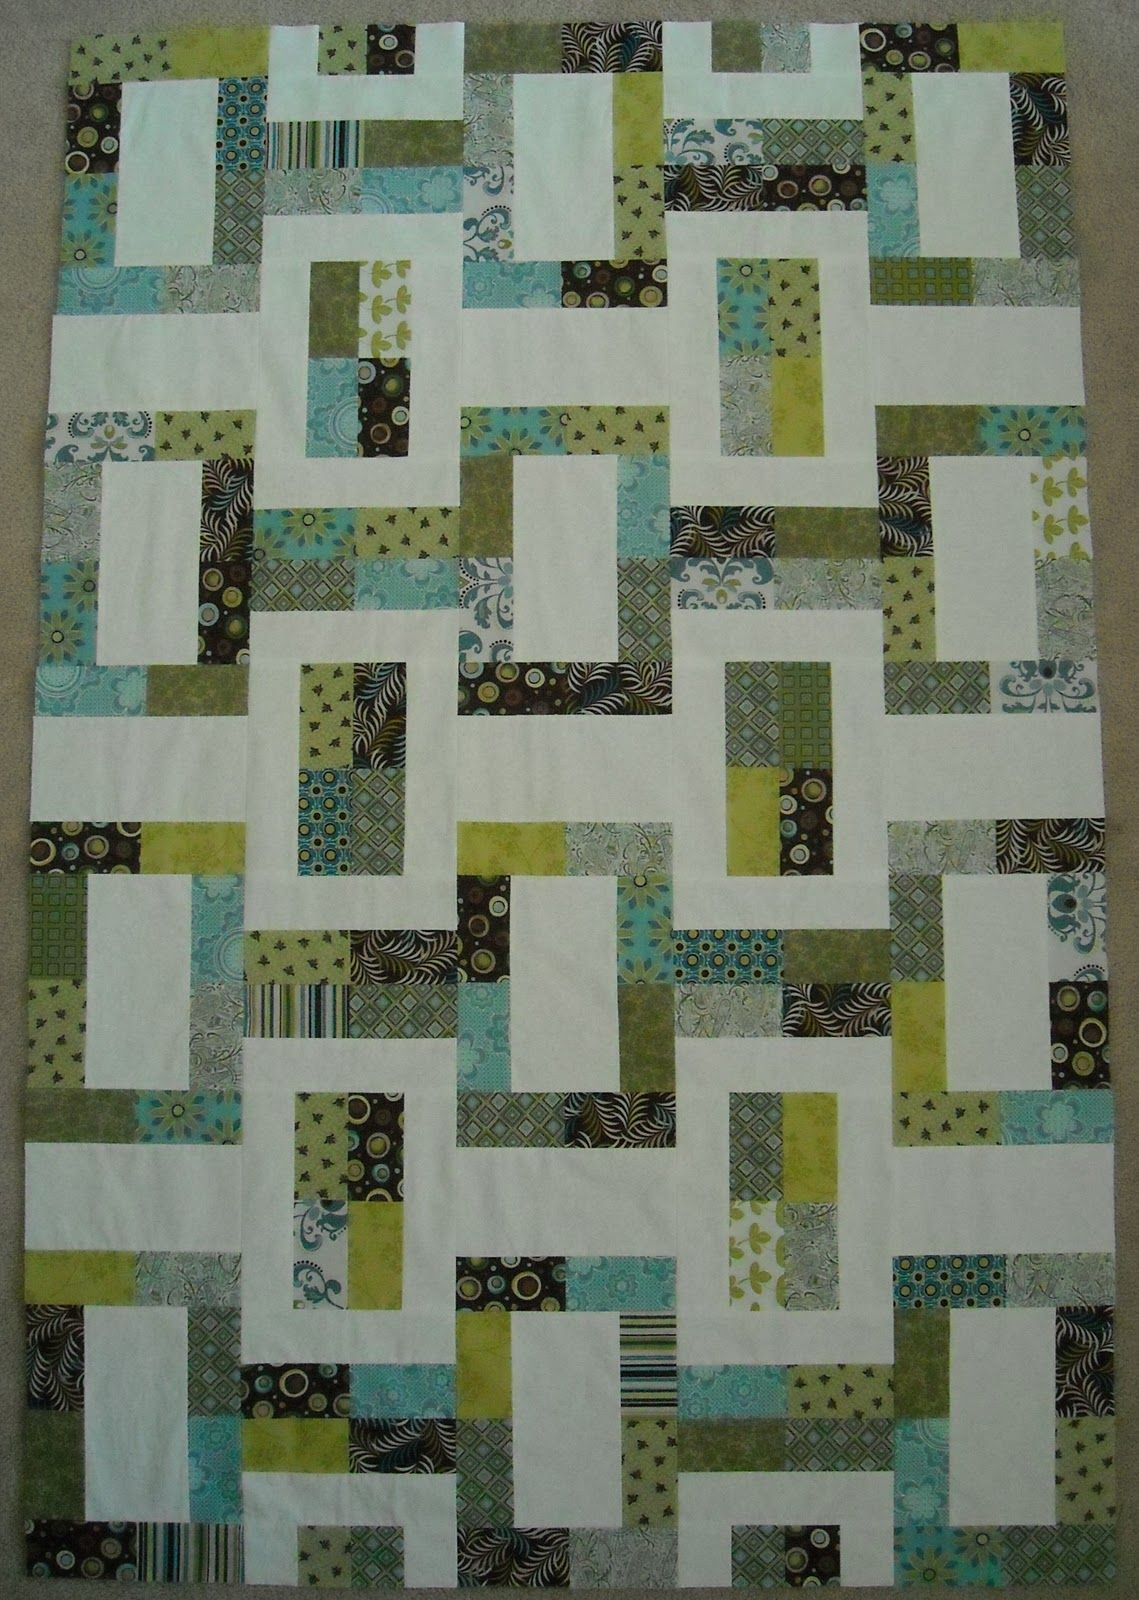 Jelly roll quilt patterns google search decke patchwork patchwork ideen und quilten - Patchwork ideen ...